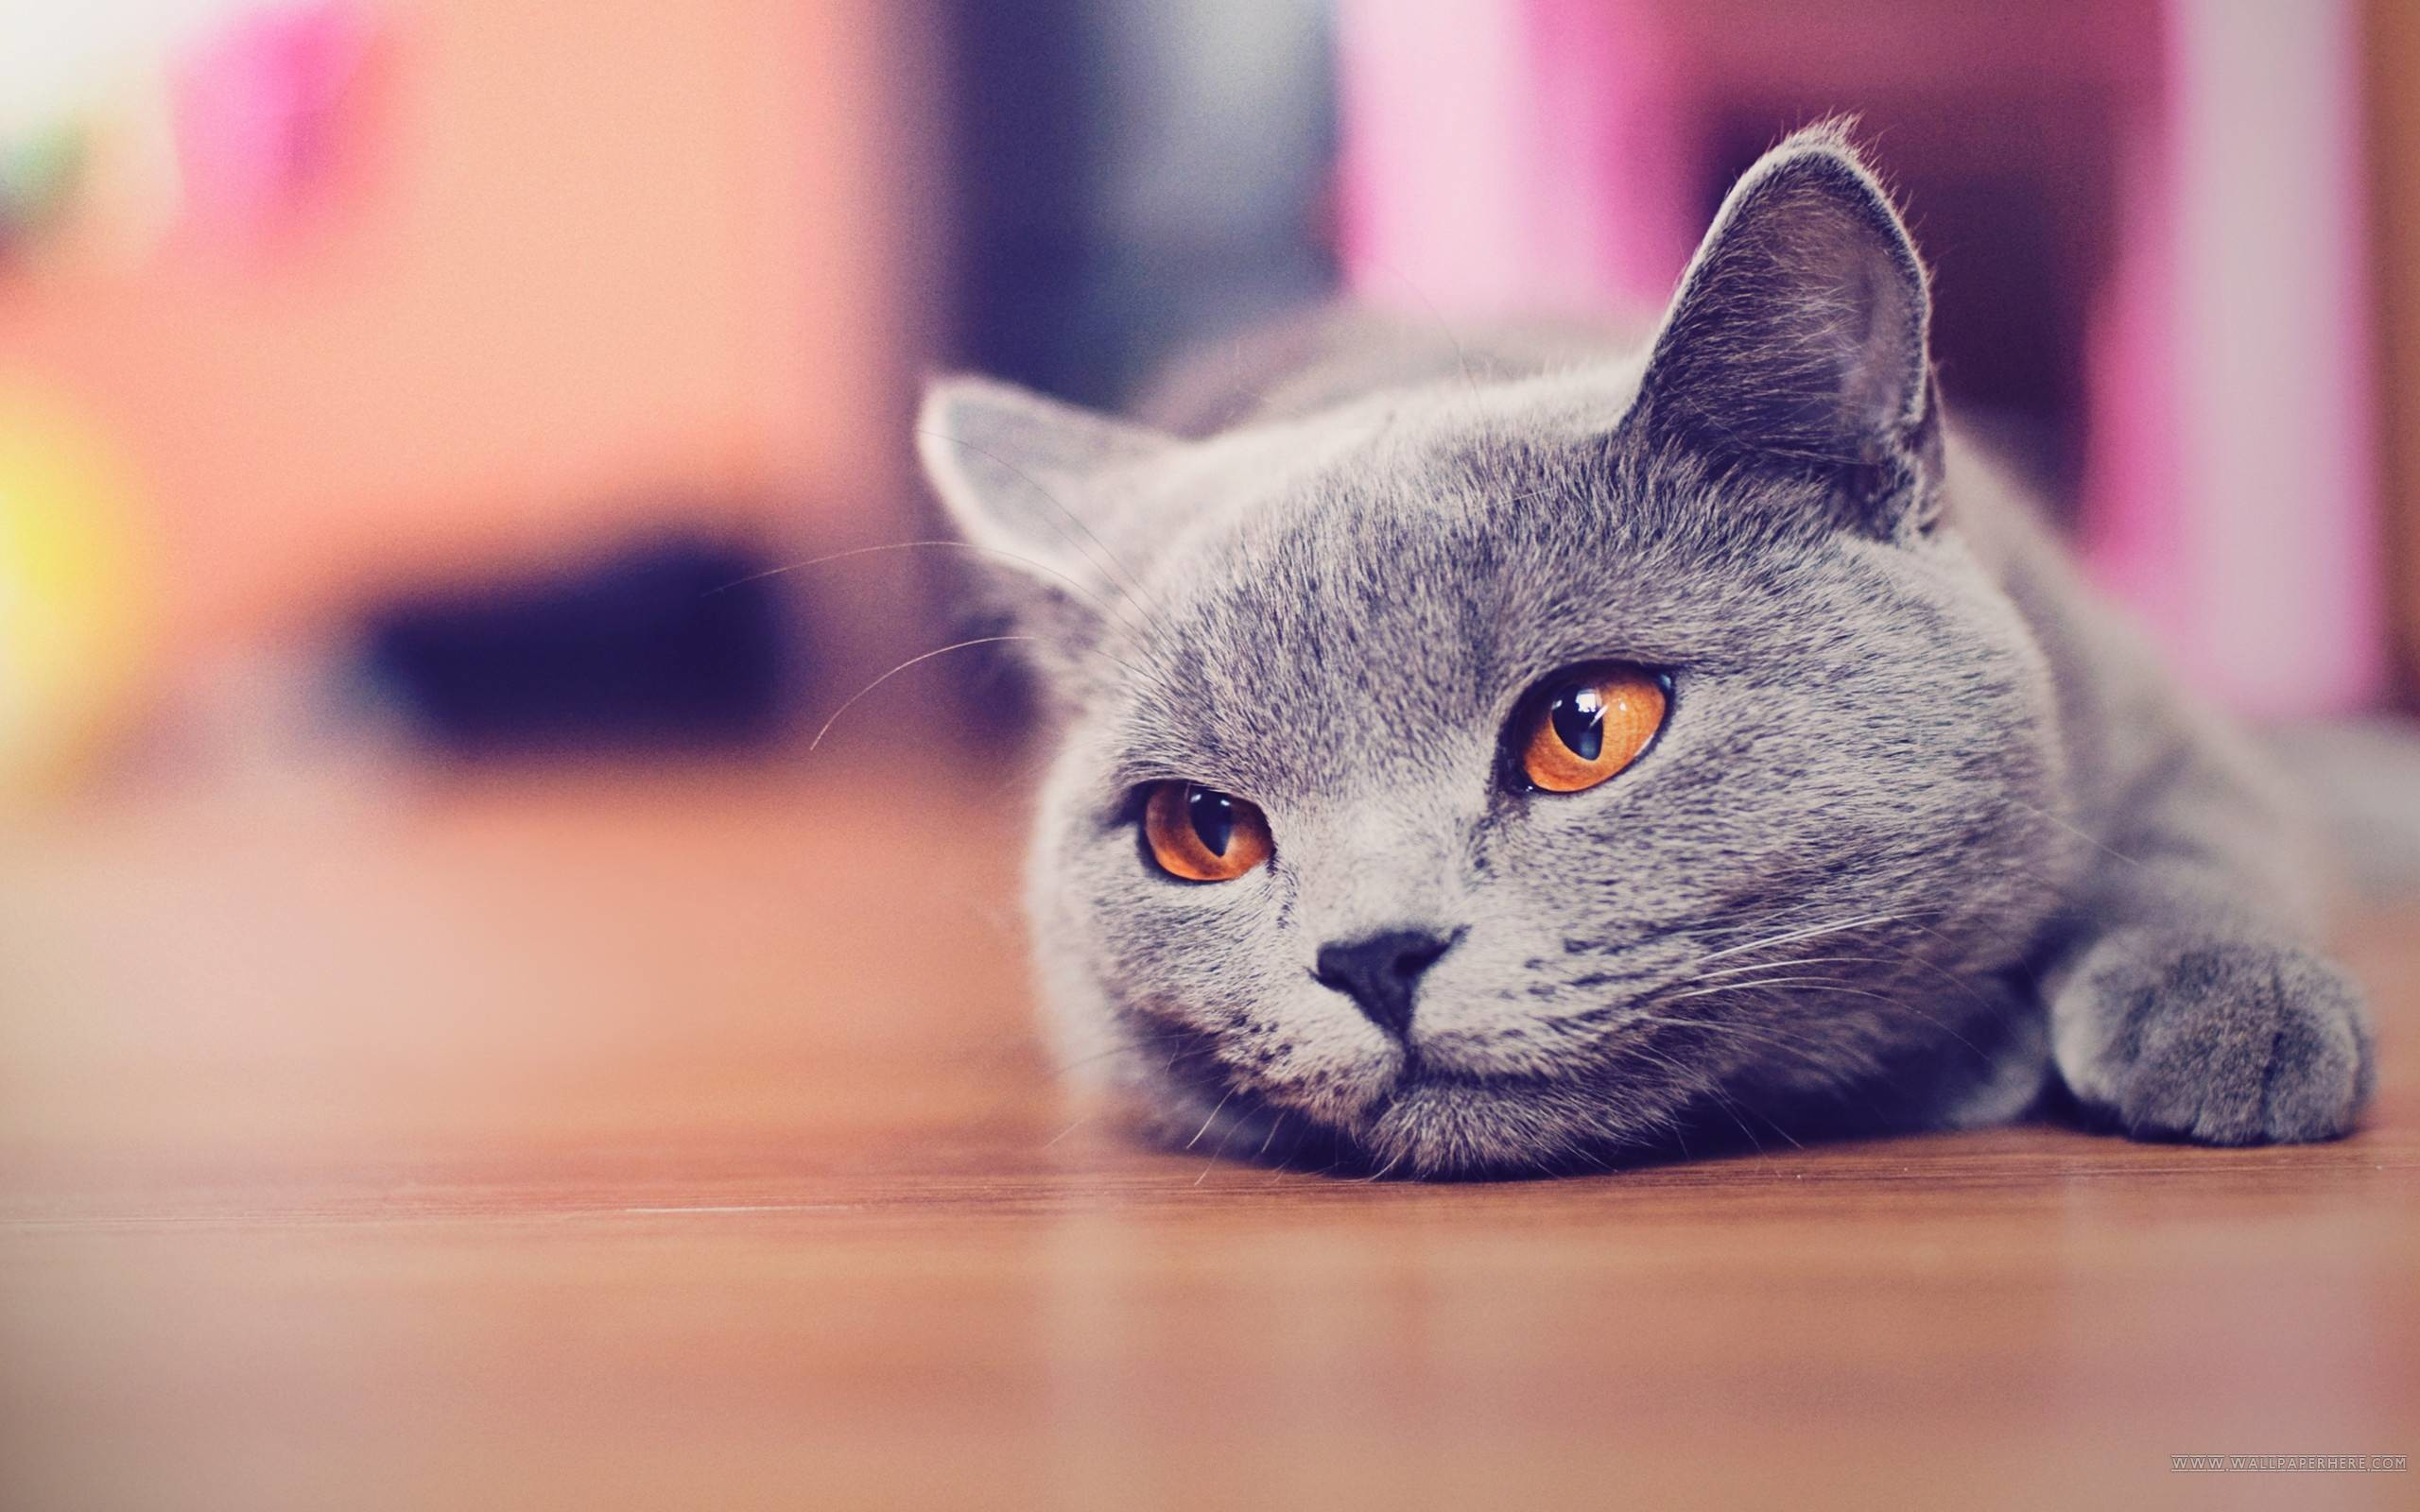 2560x1600 ... Desktop Wallpaper - WallpaperSafari Funny Cats HD Wallpapers Free  Download – HD Wallpapers Images .